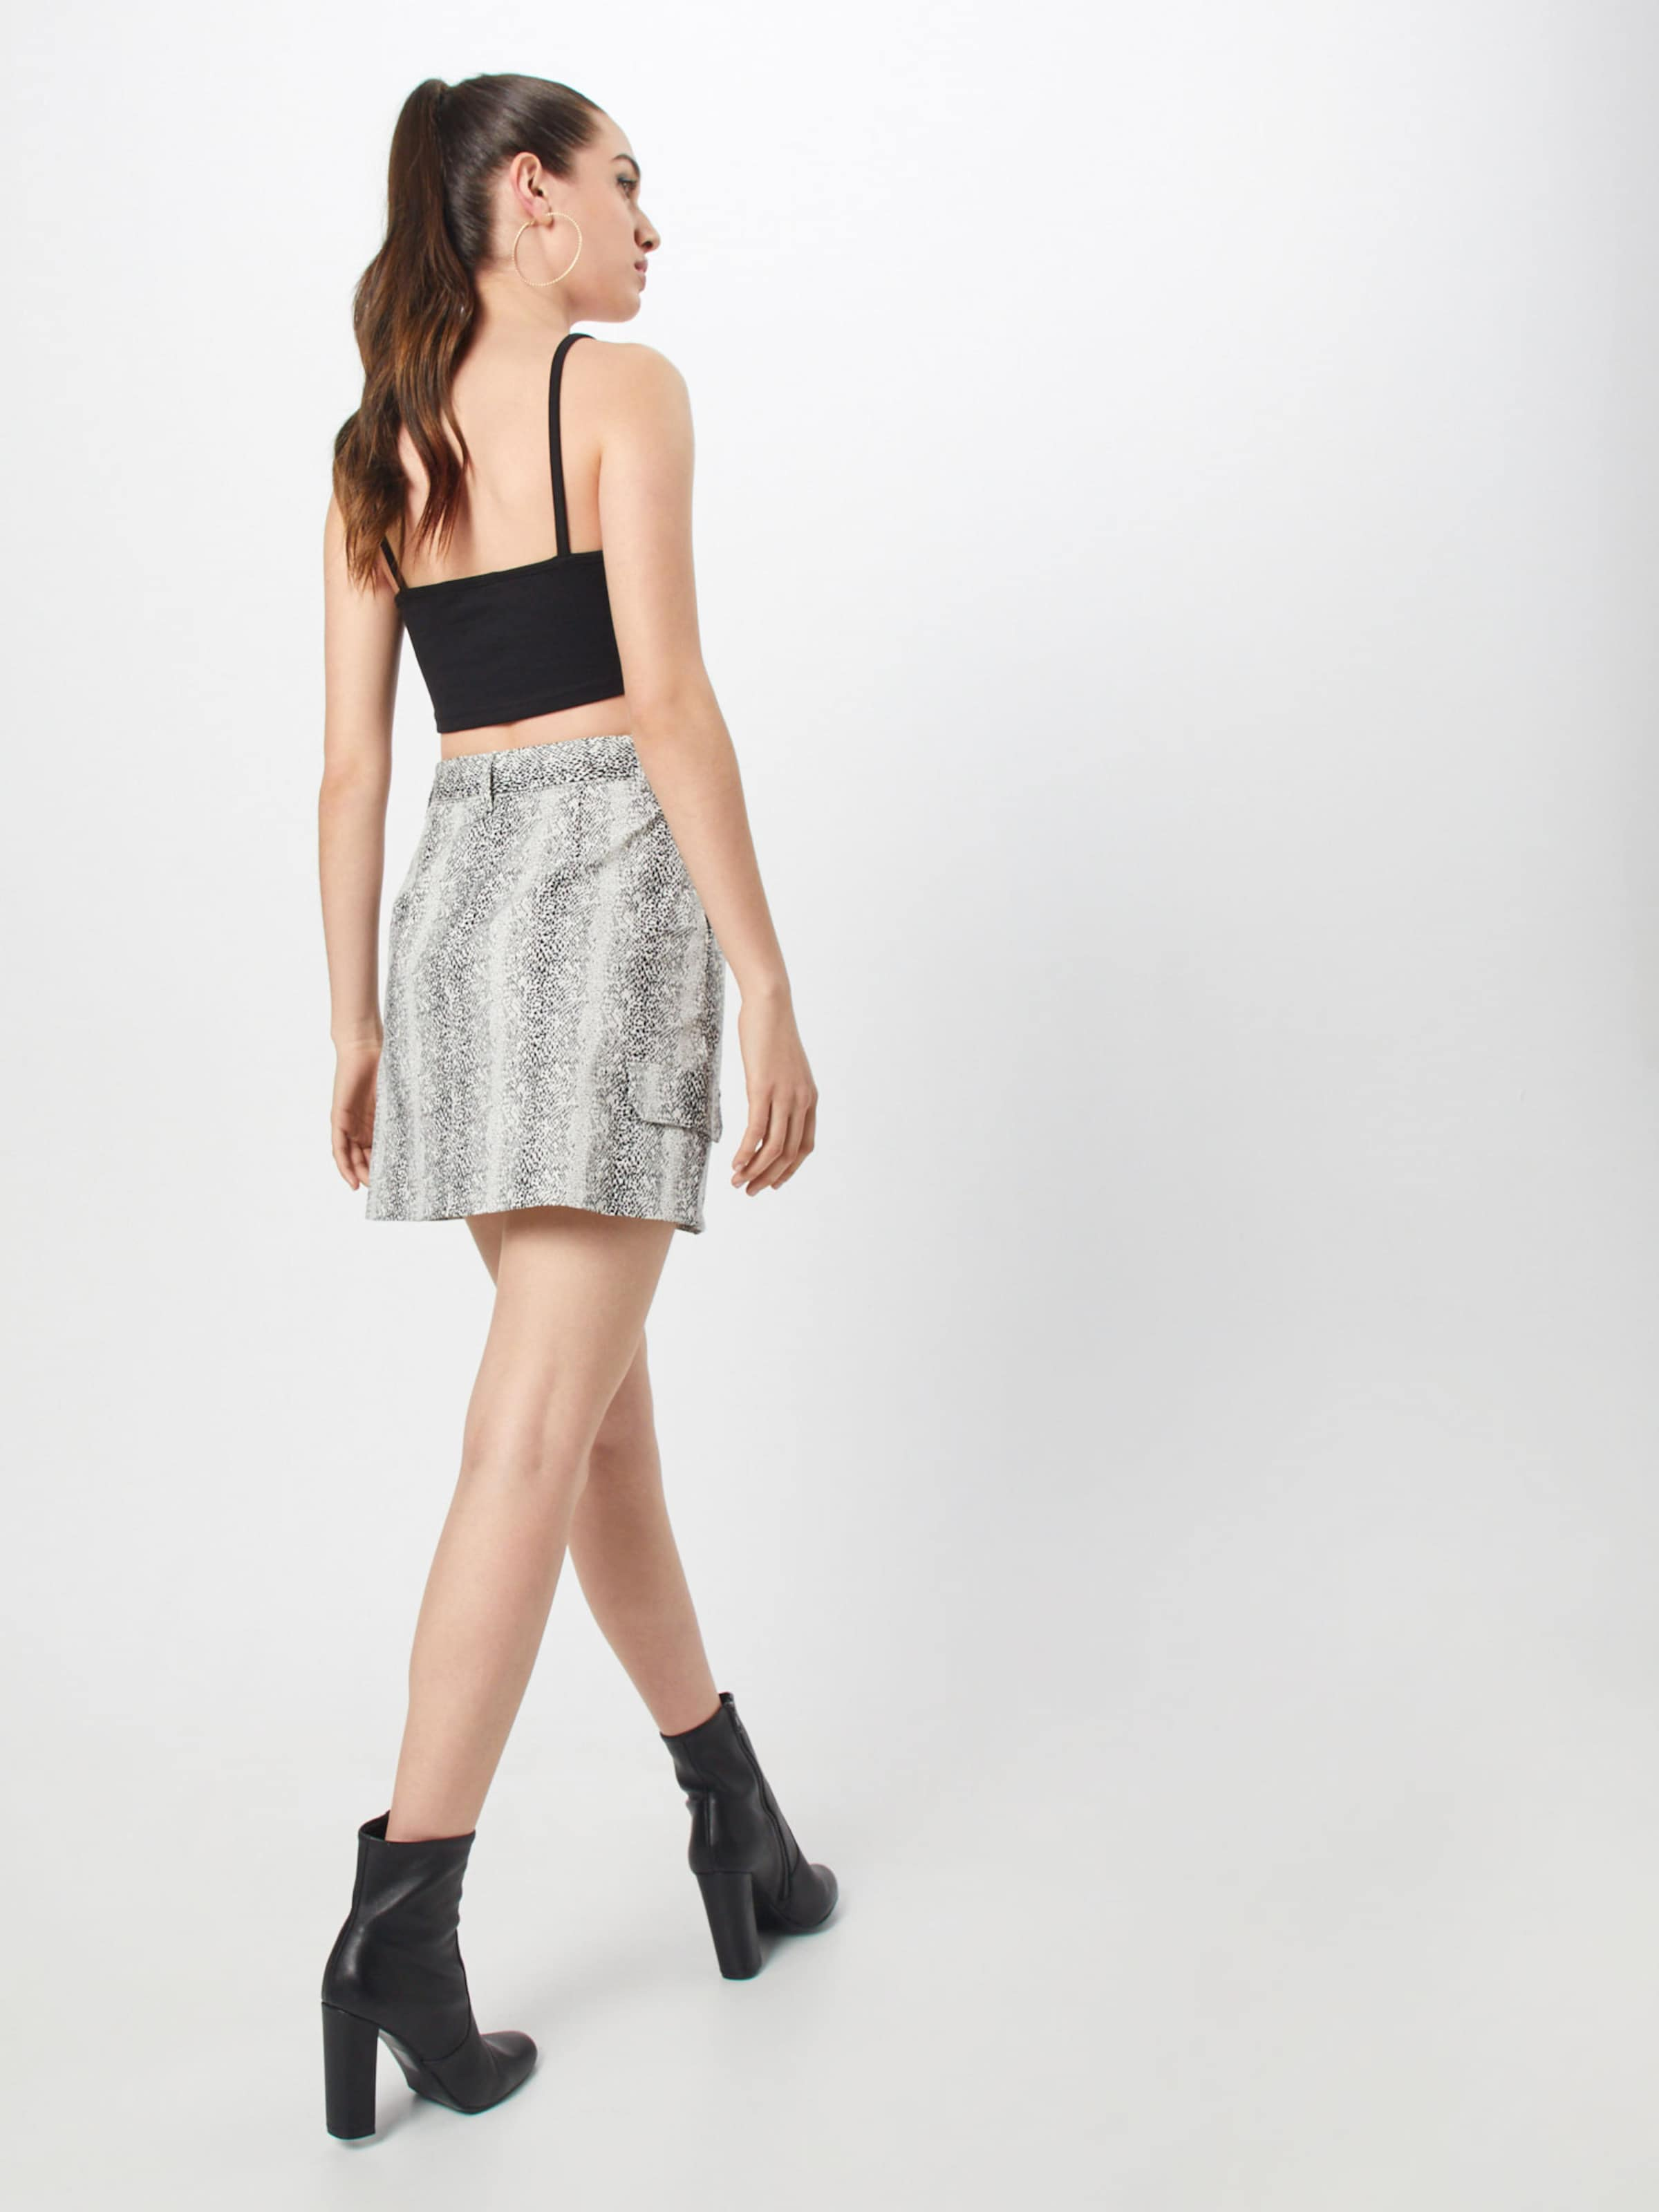 Skirt In Missguided Rock 'snake Weiß White' Print Utility Nv8mOnwy0P